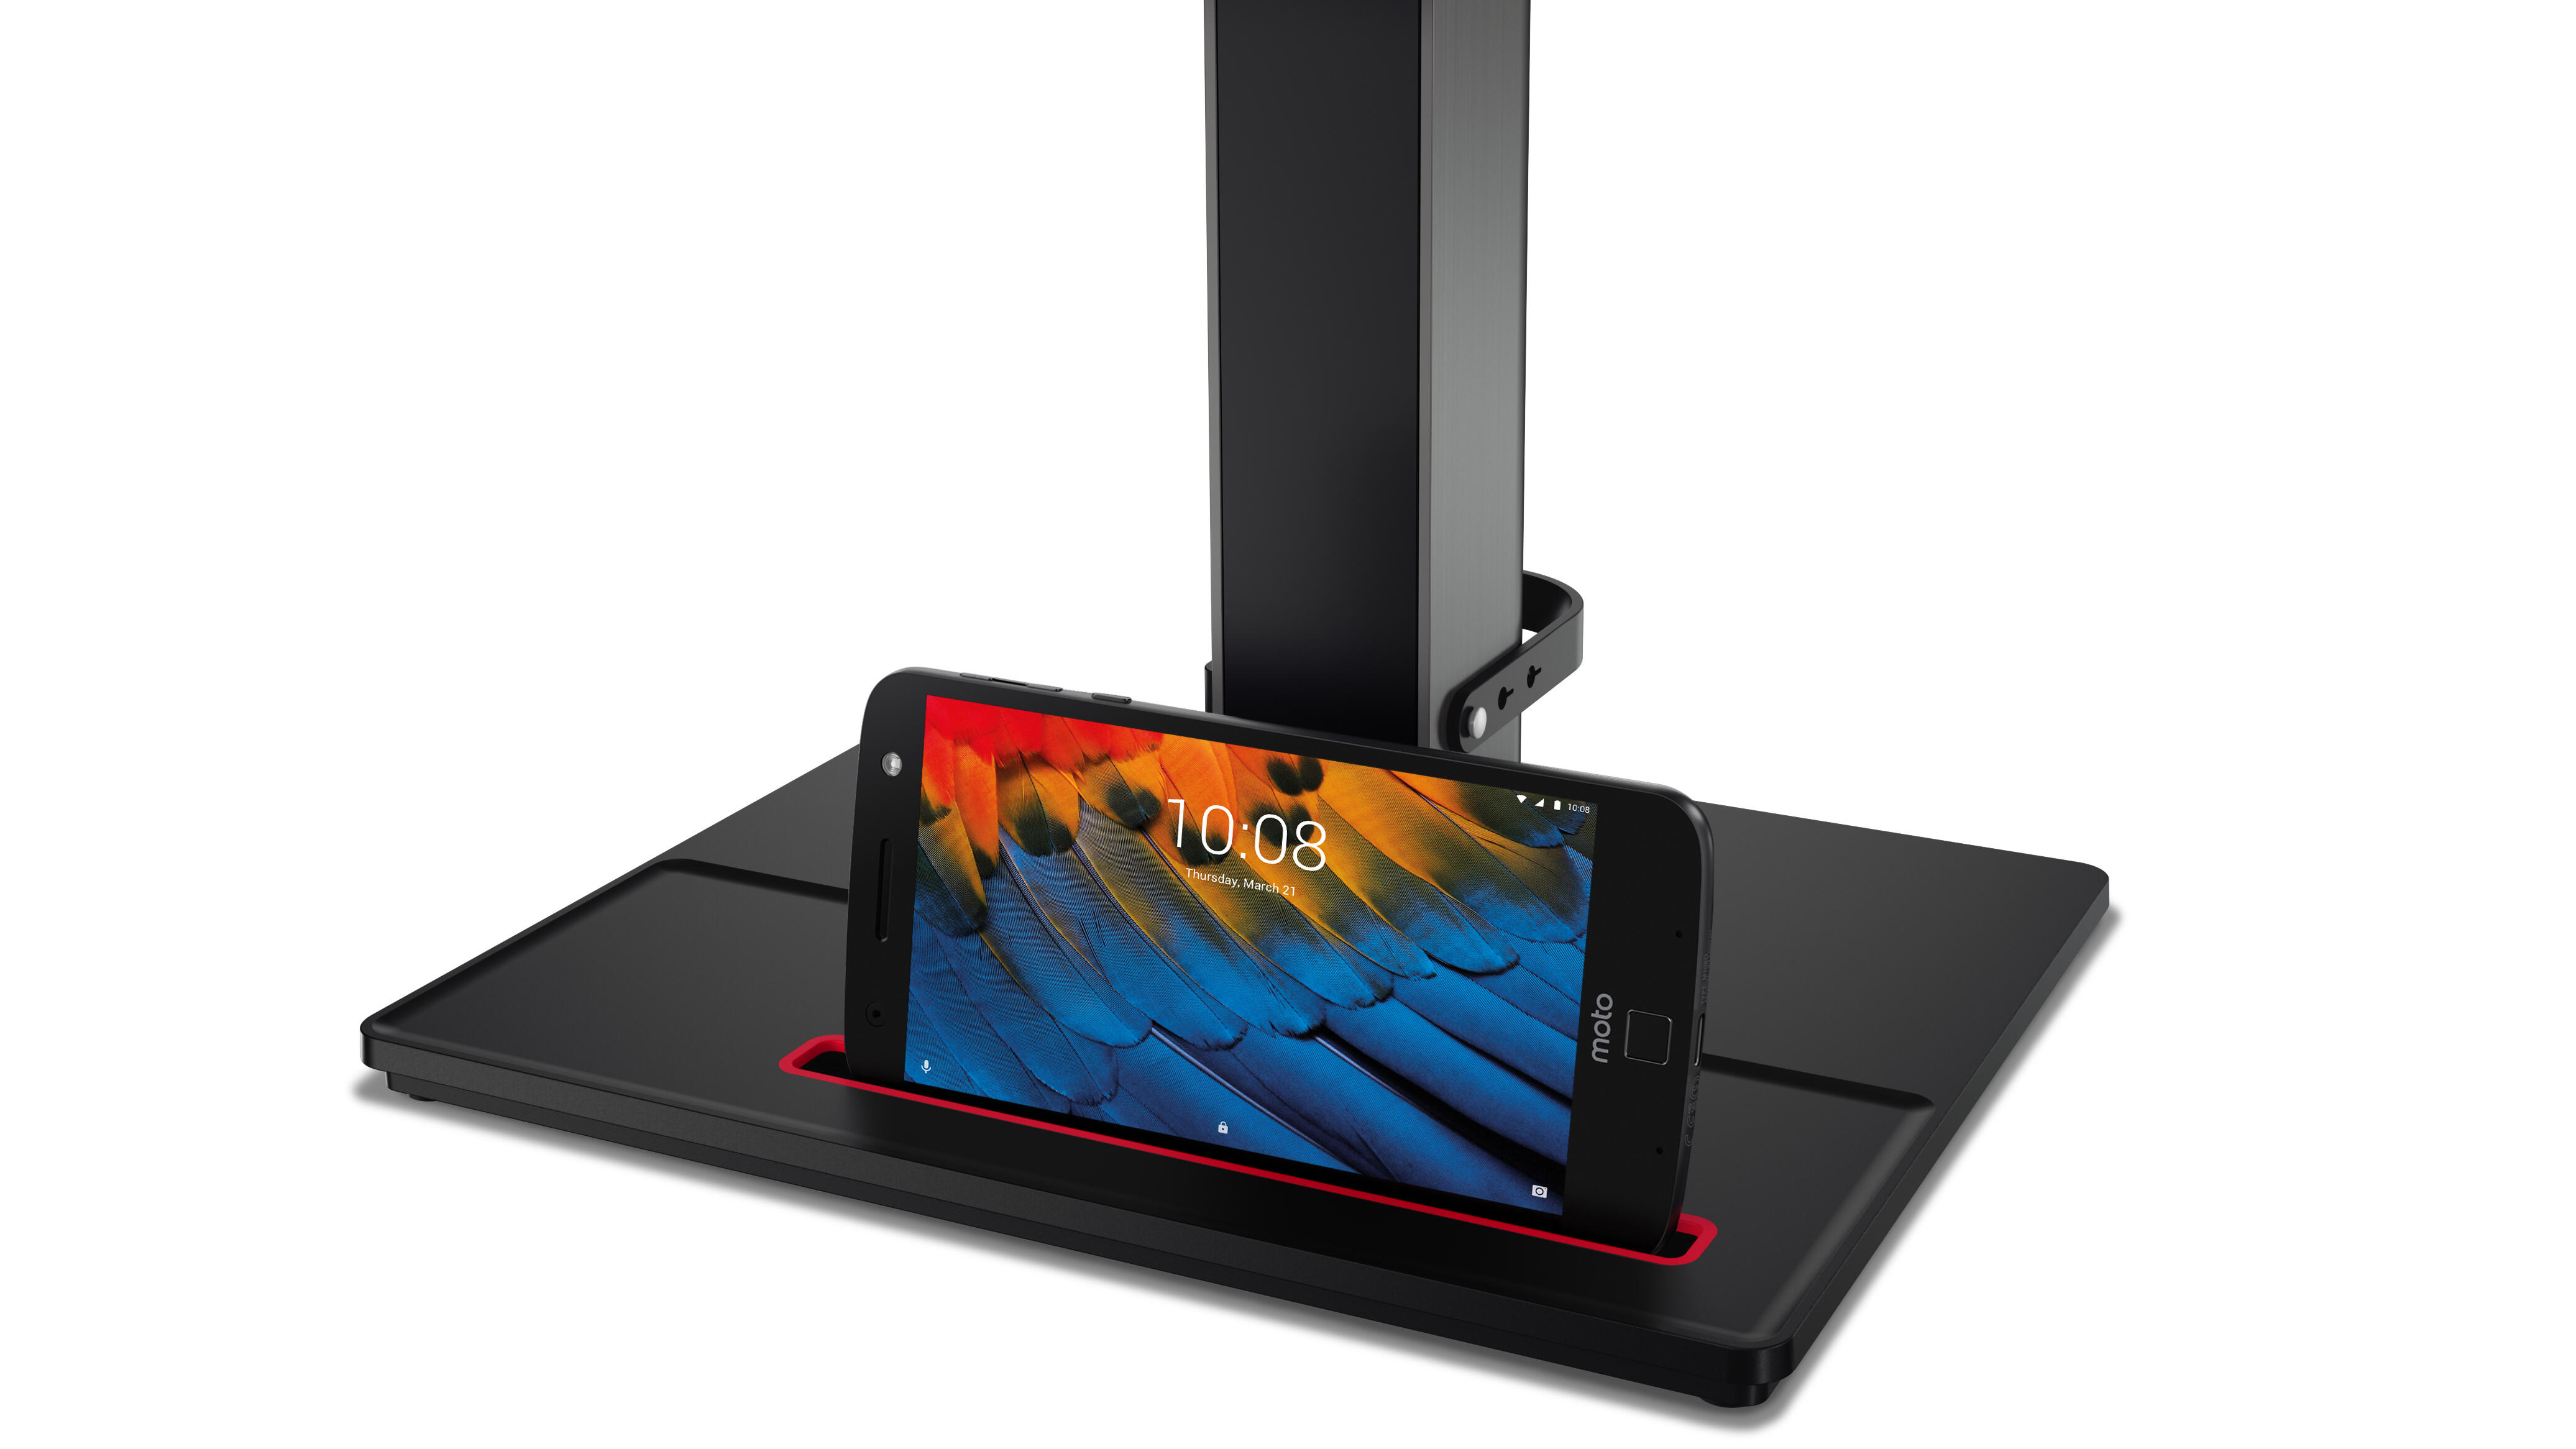 05-thinkvision-creator-p27-closeup-phone-holder-with-mobile